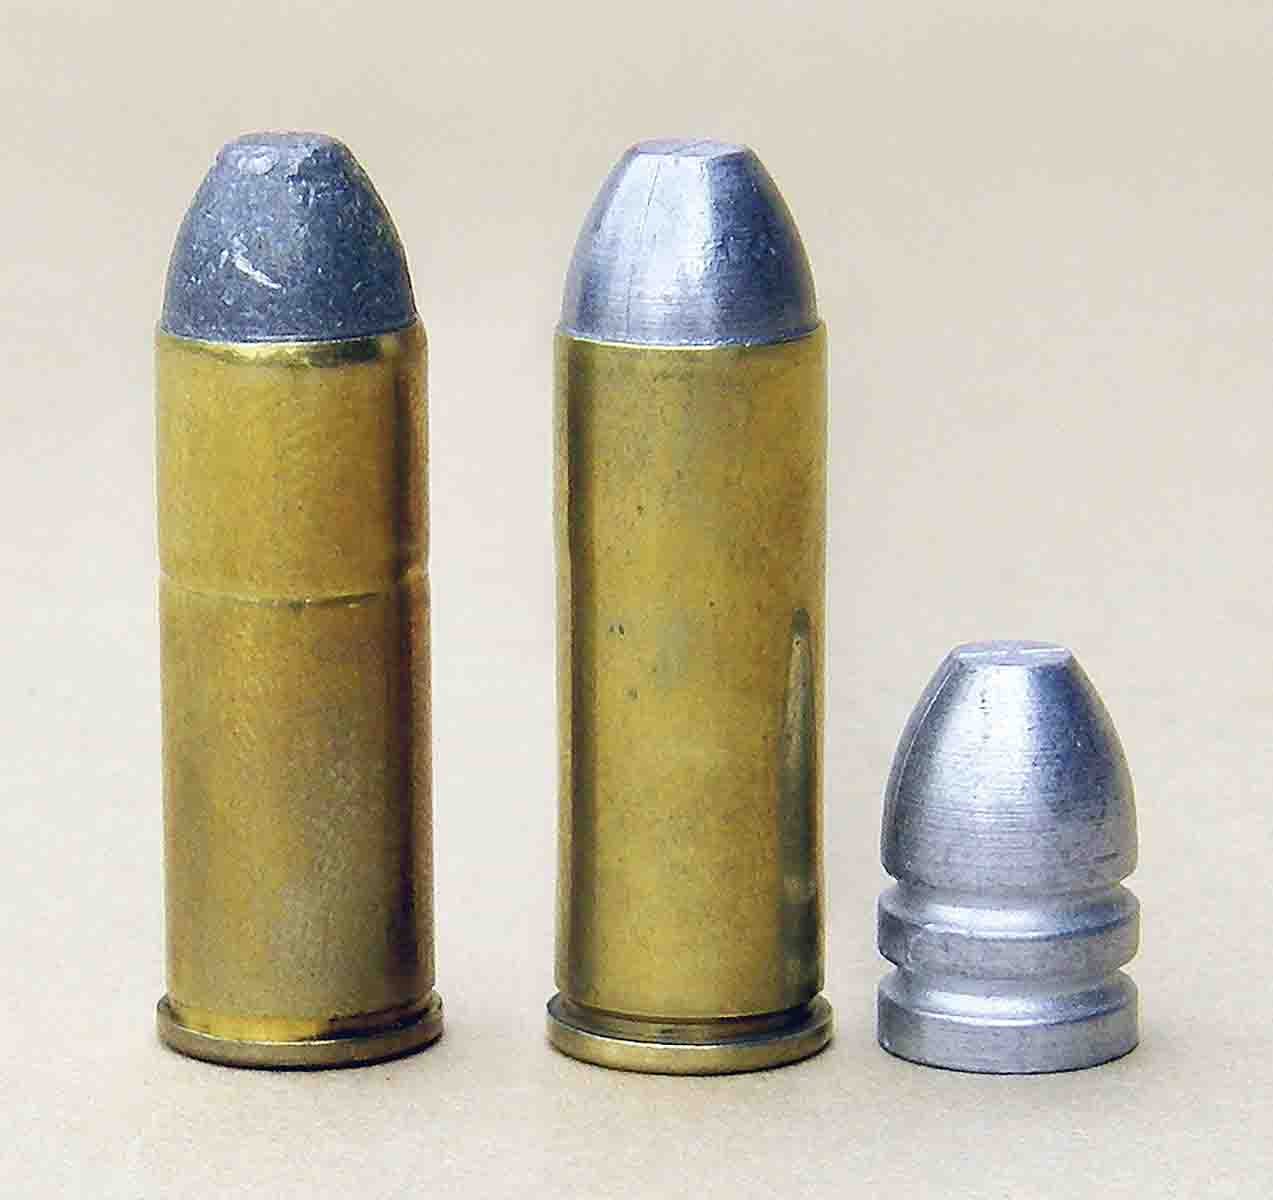 Brian's handload (right) consists of a cast bullet from Lyman mould 454190. The bullet weighs around 255 to 260 grains and is profiled similarly to the factory load (left).